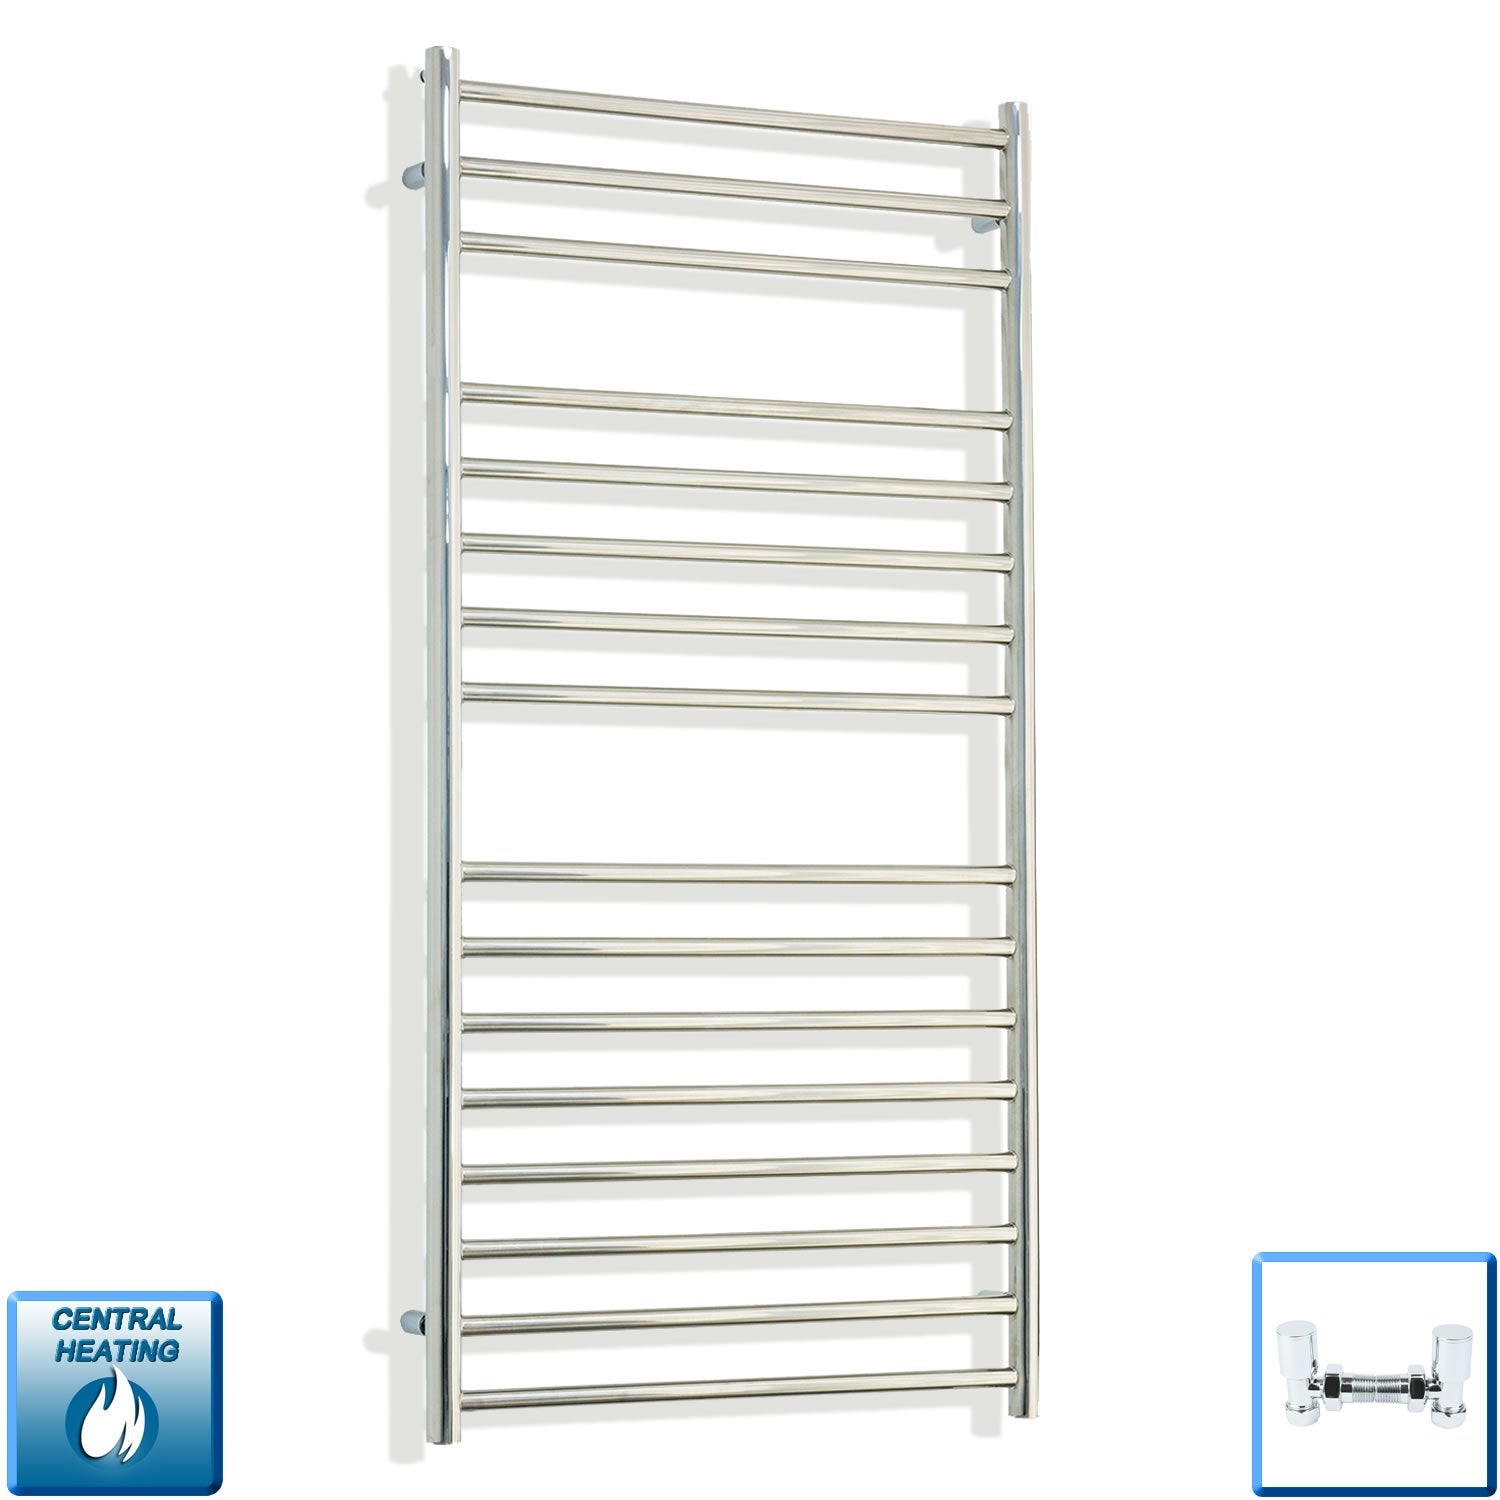 600mm Wide 1200mm High Stainless Steel Polished Heated Flat Towel Rail Radiator Central heating,With Angled Valves